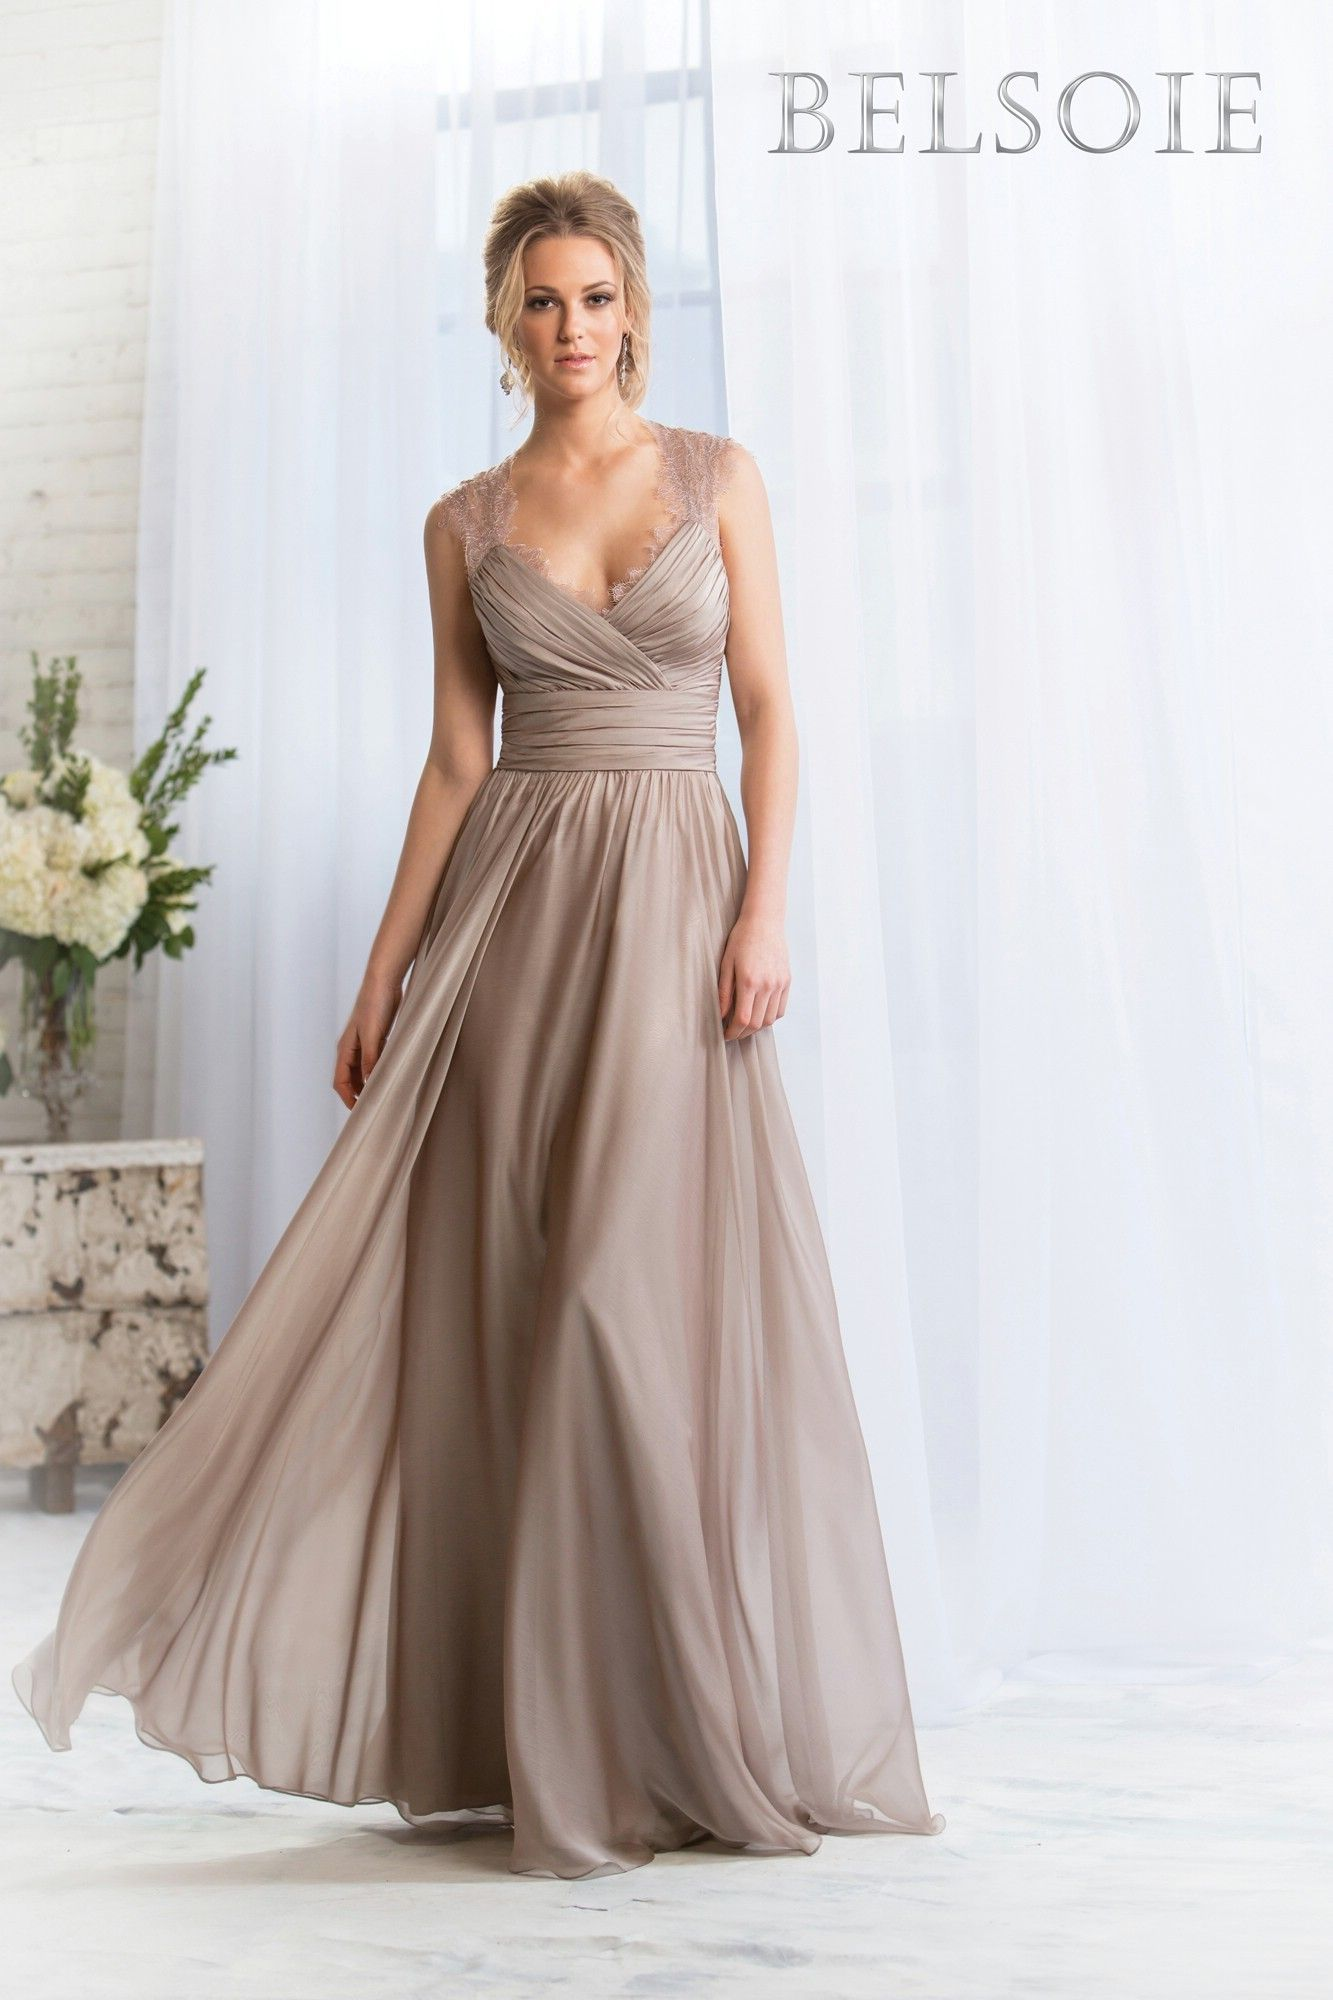 Jasmine belsoie bridesmaid dresses style l164057 jasmine belsoie bridesmaid dresses style l164057 taupebridesmaiddresses greenandbrownwedding ombrellifo Images